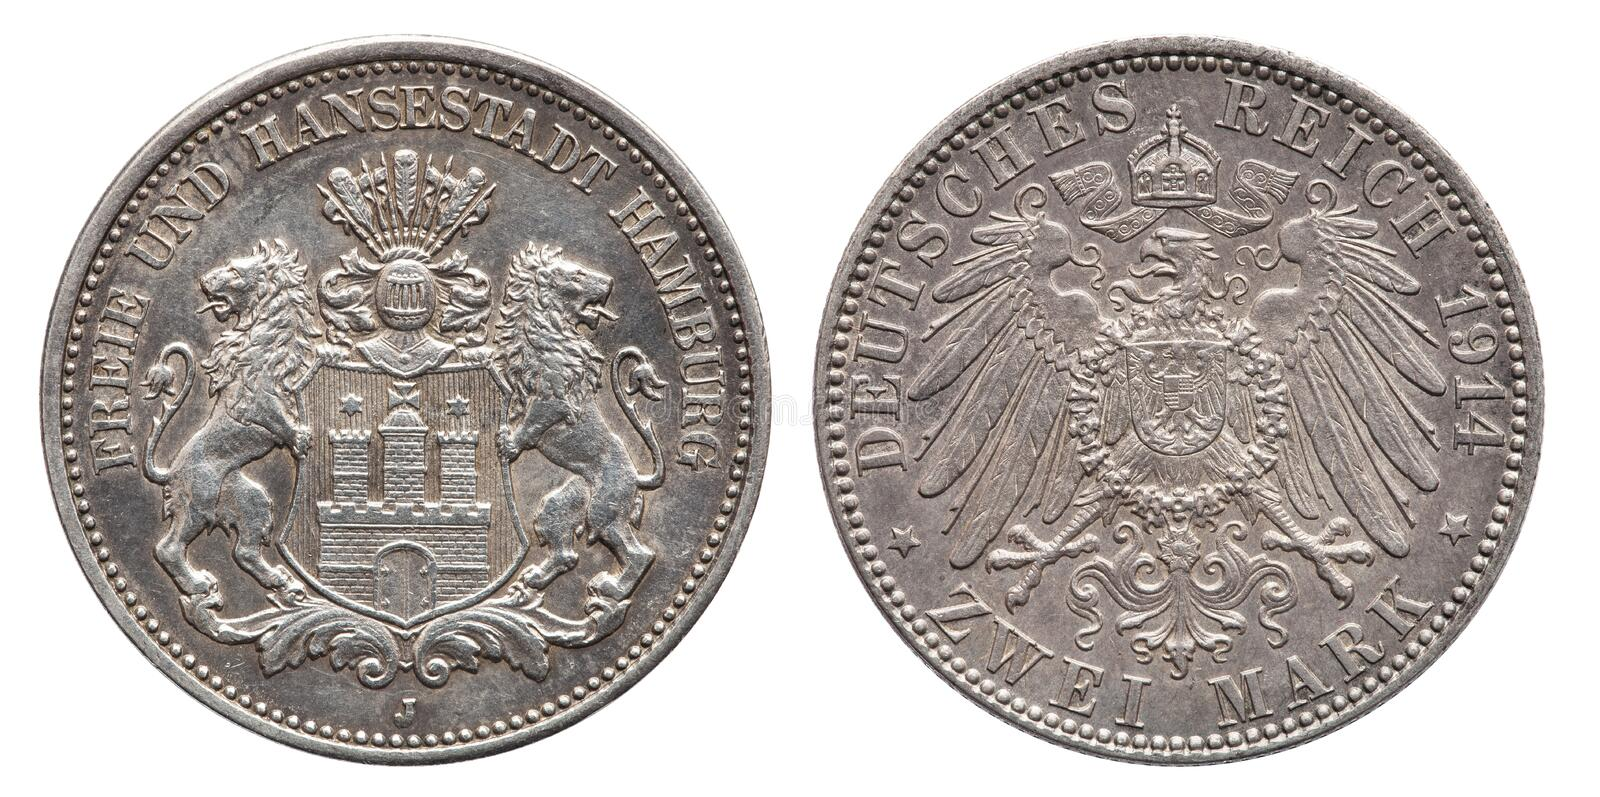 German Empire Hamburg 2 Mark silver coin vintage 1914. Coat of arms and text Free and Hanseatic City of Hamburg royalty free stock photography